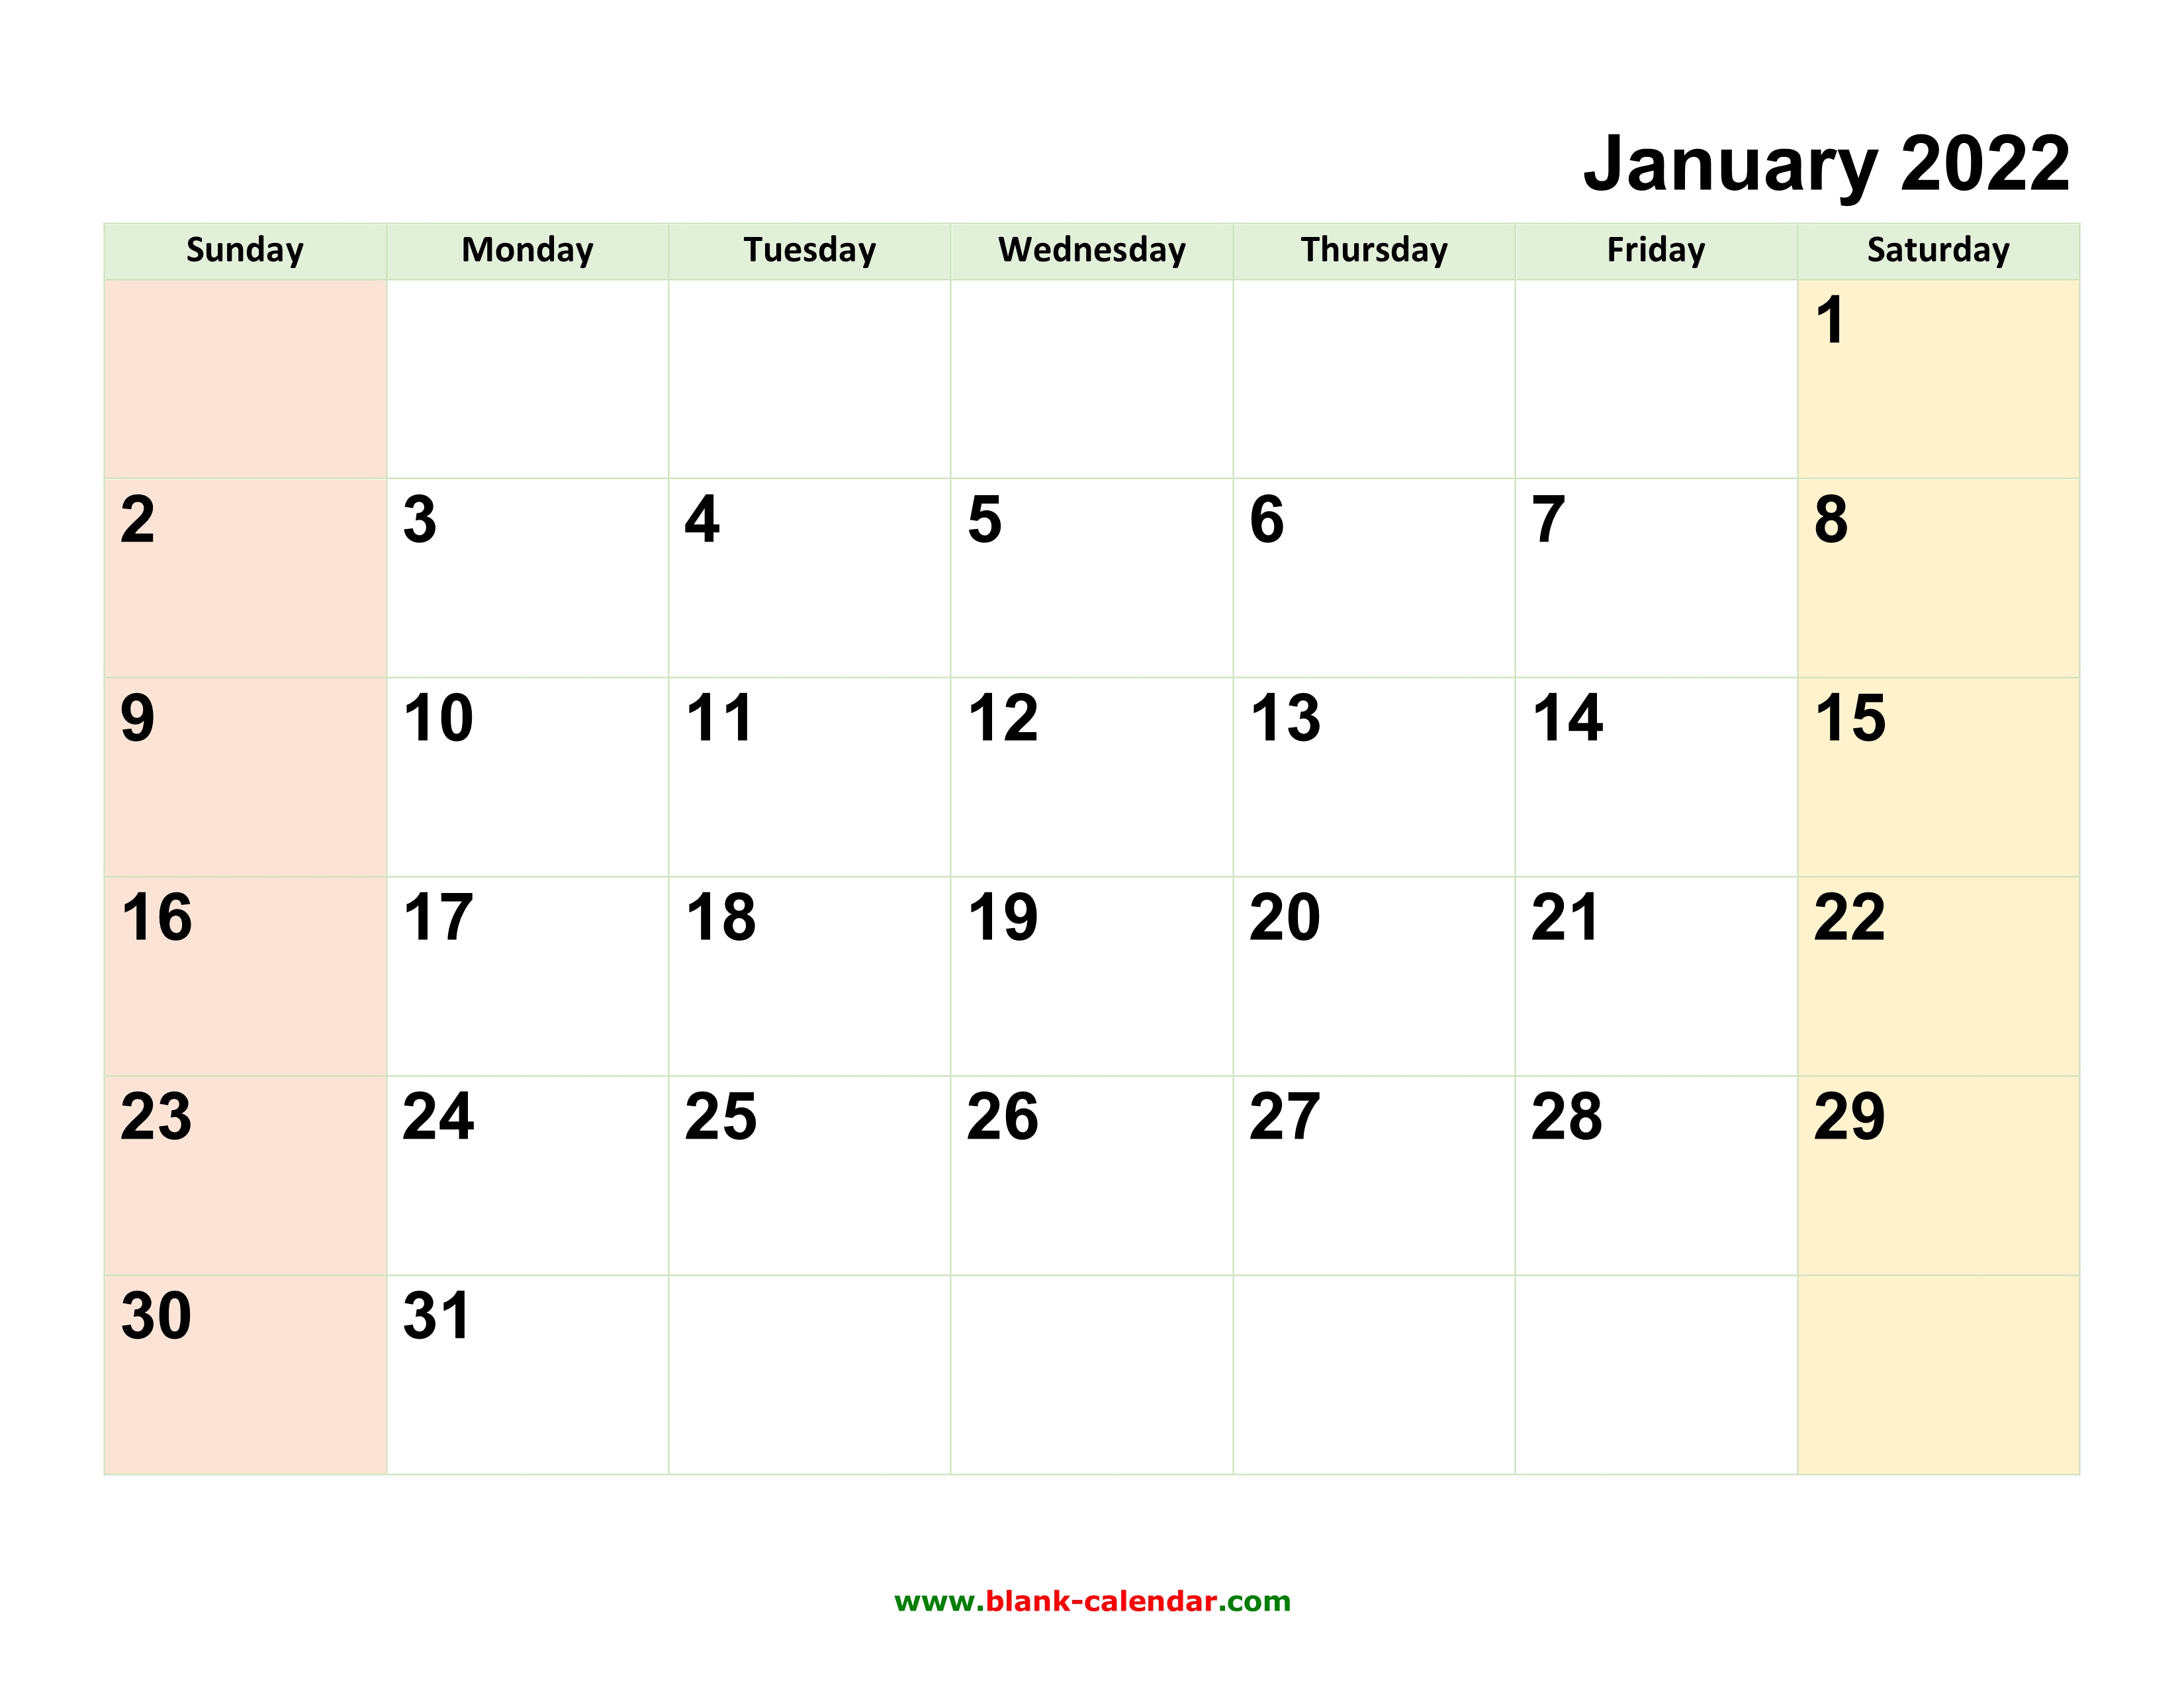 Monthly Calendar 2022 | Free Download, Editable and Printable